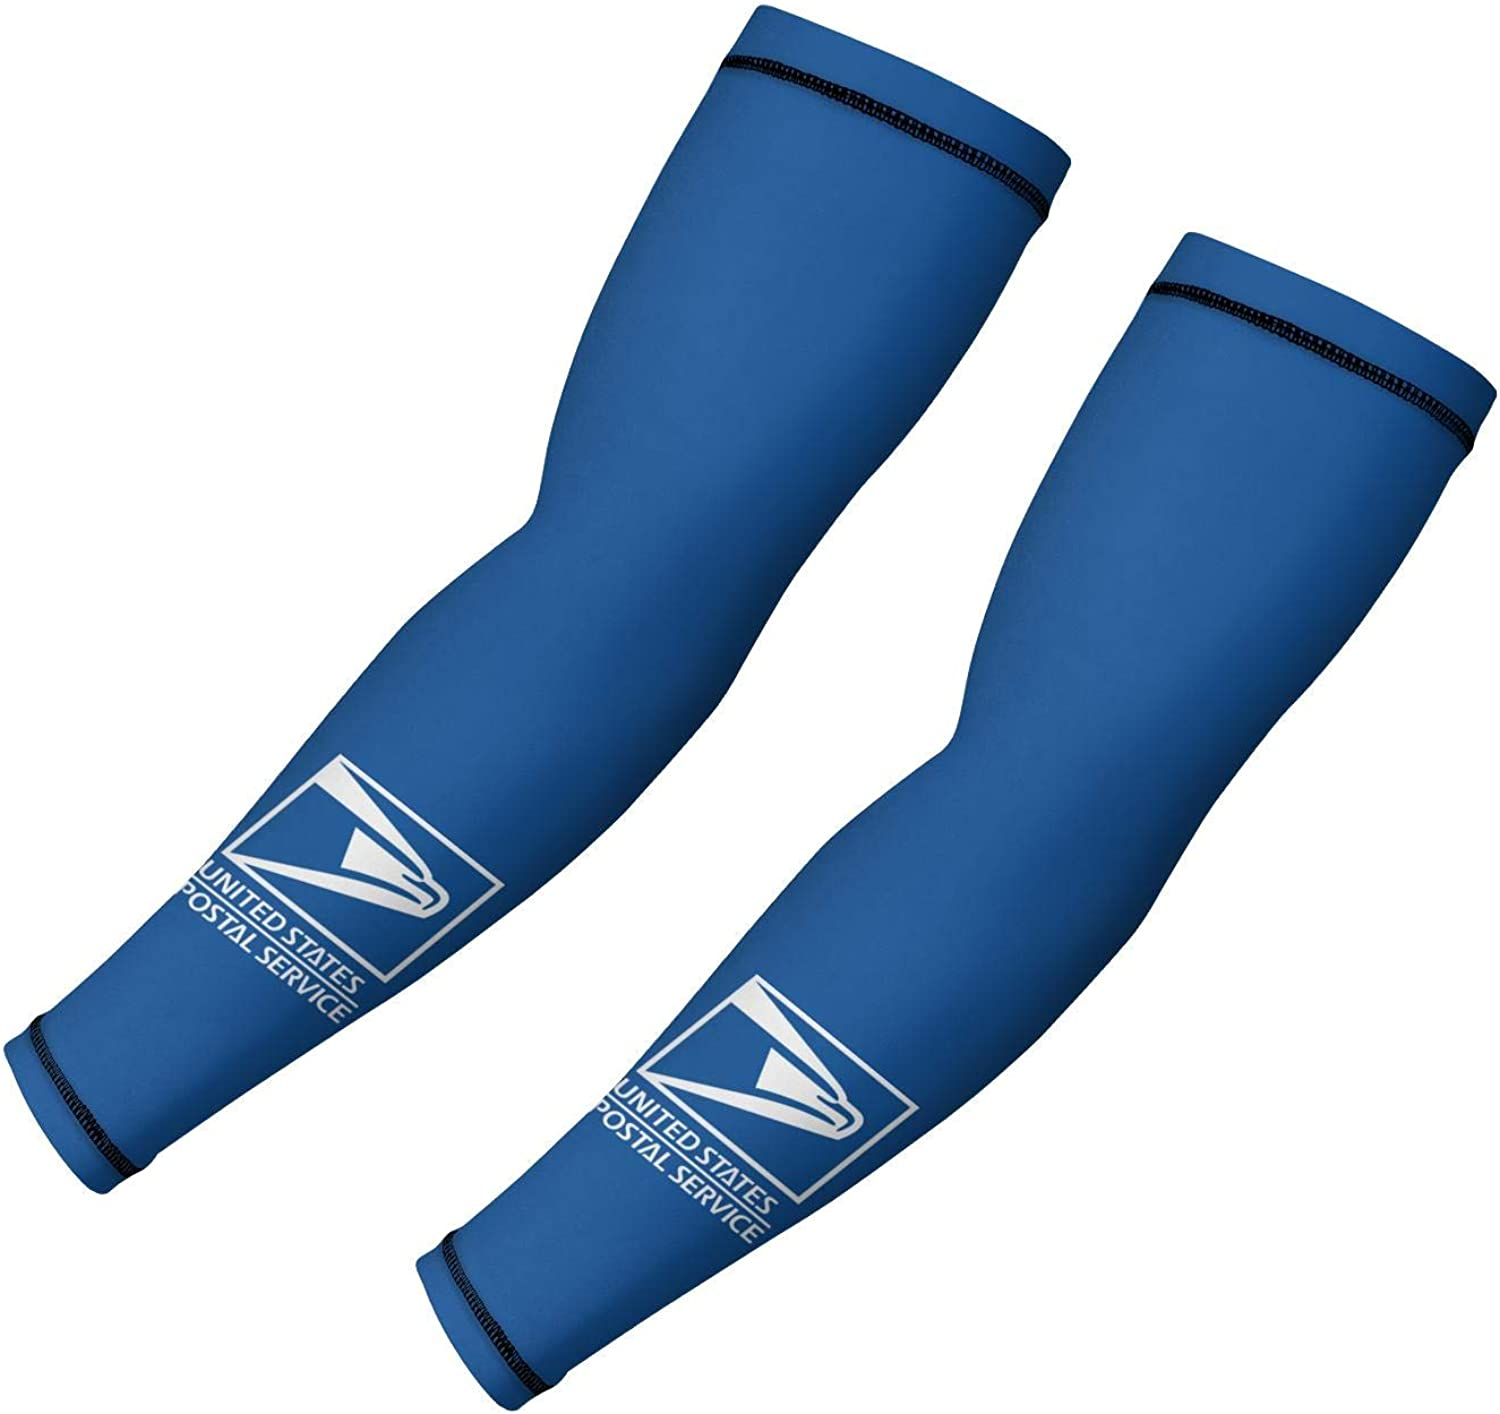 Cooling Arm Coverings Sleeves White-Black-United-States-Postal-Service-Mailman-Arm Sleeves for Men Women Basketball